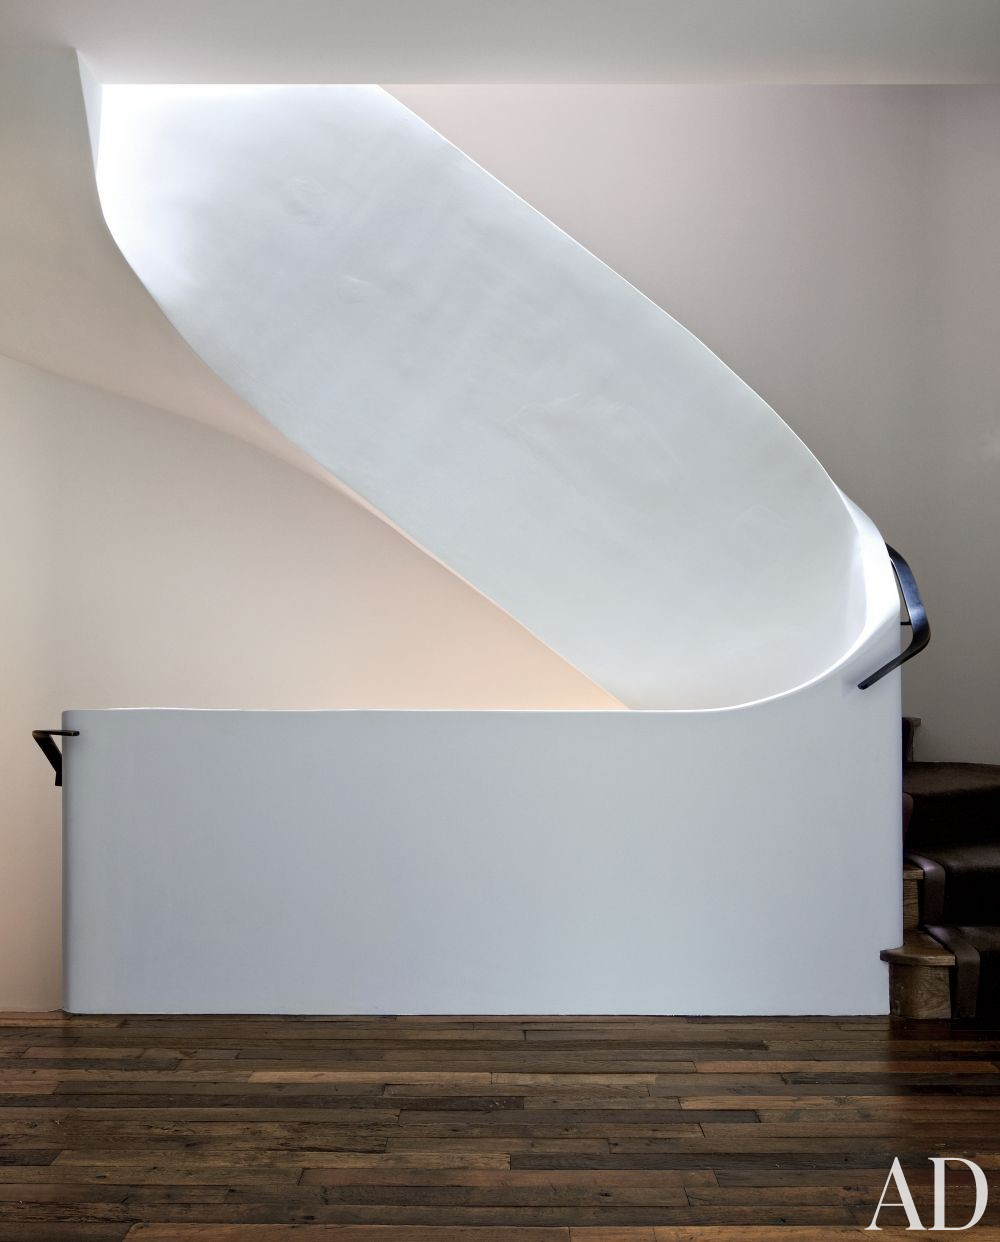 Contemporary Staircase/Hallway by Pamplemousse Design and Oliver Cope Architect in New York, New York